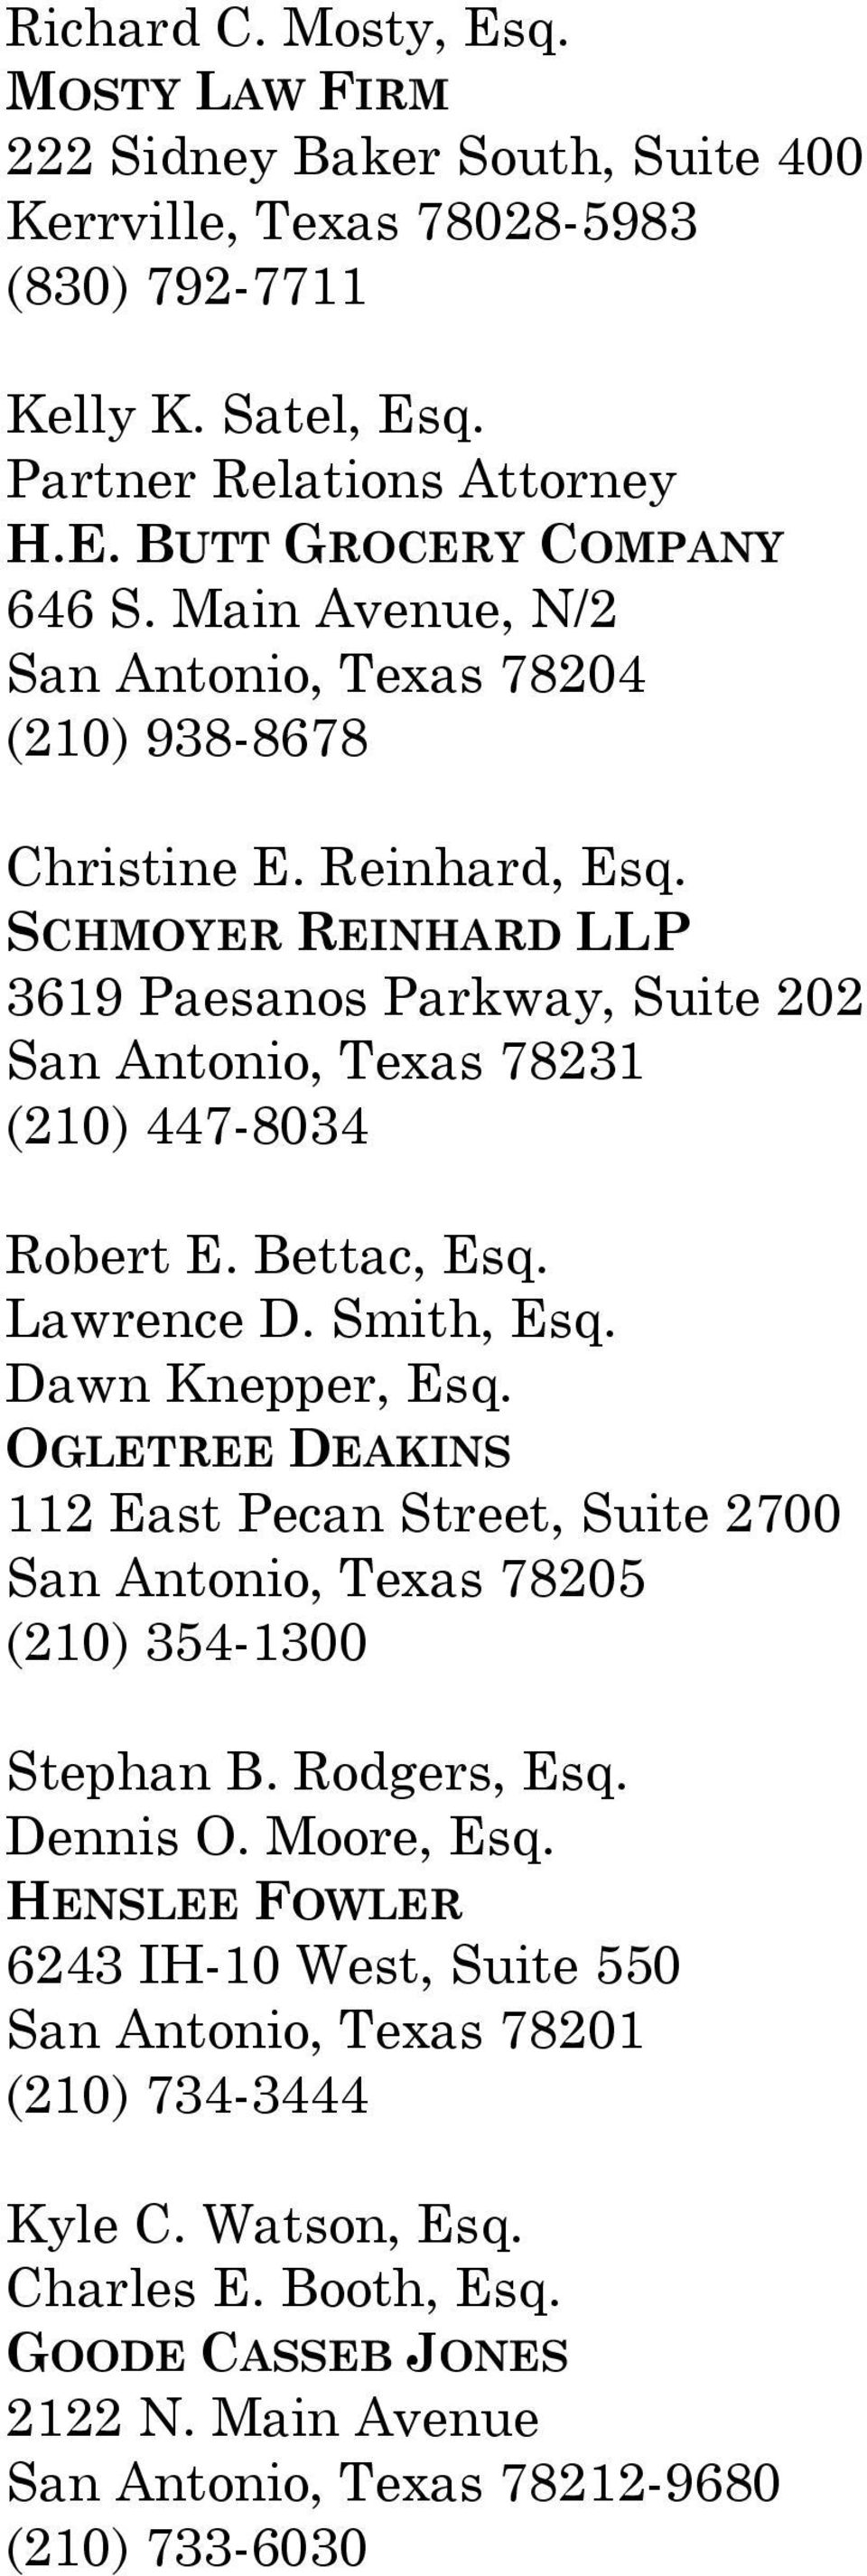 Bettac, Esq. Lawrence D. Smith, Esq. Dawn Knepper, Esq. OGLETREE DEAKINS 112 East Pecan Street, Suite 2700 San Antonio, Texas 78205 (210) 354-1300 Stephan B. Rodgers, Esq. Dennis O. Moore, Esq.